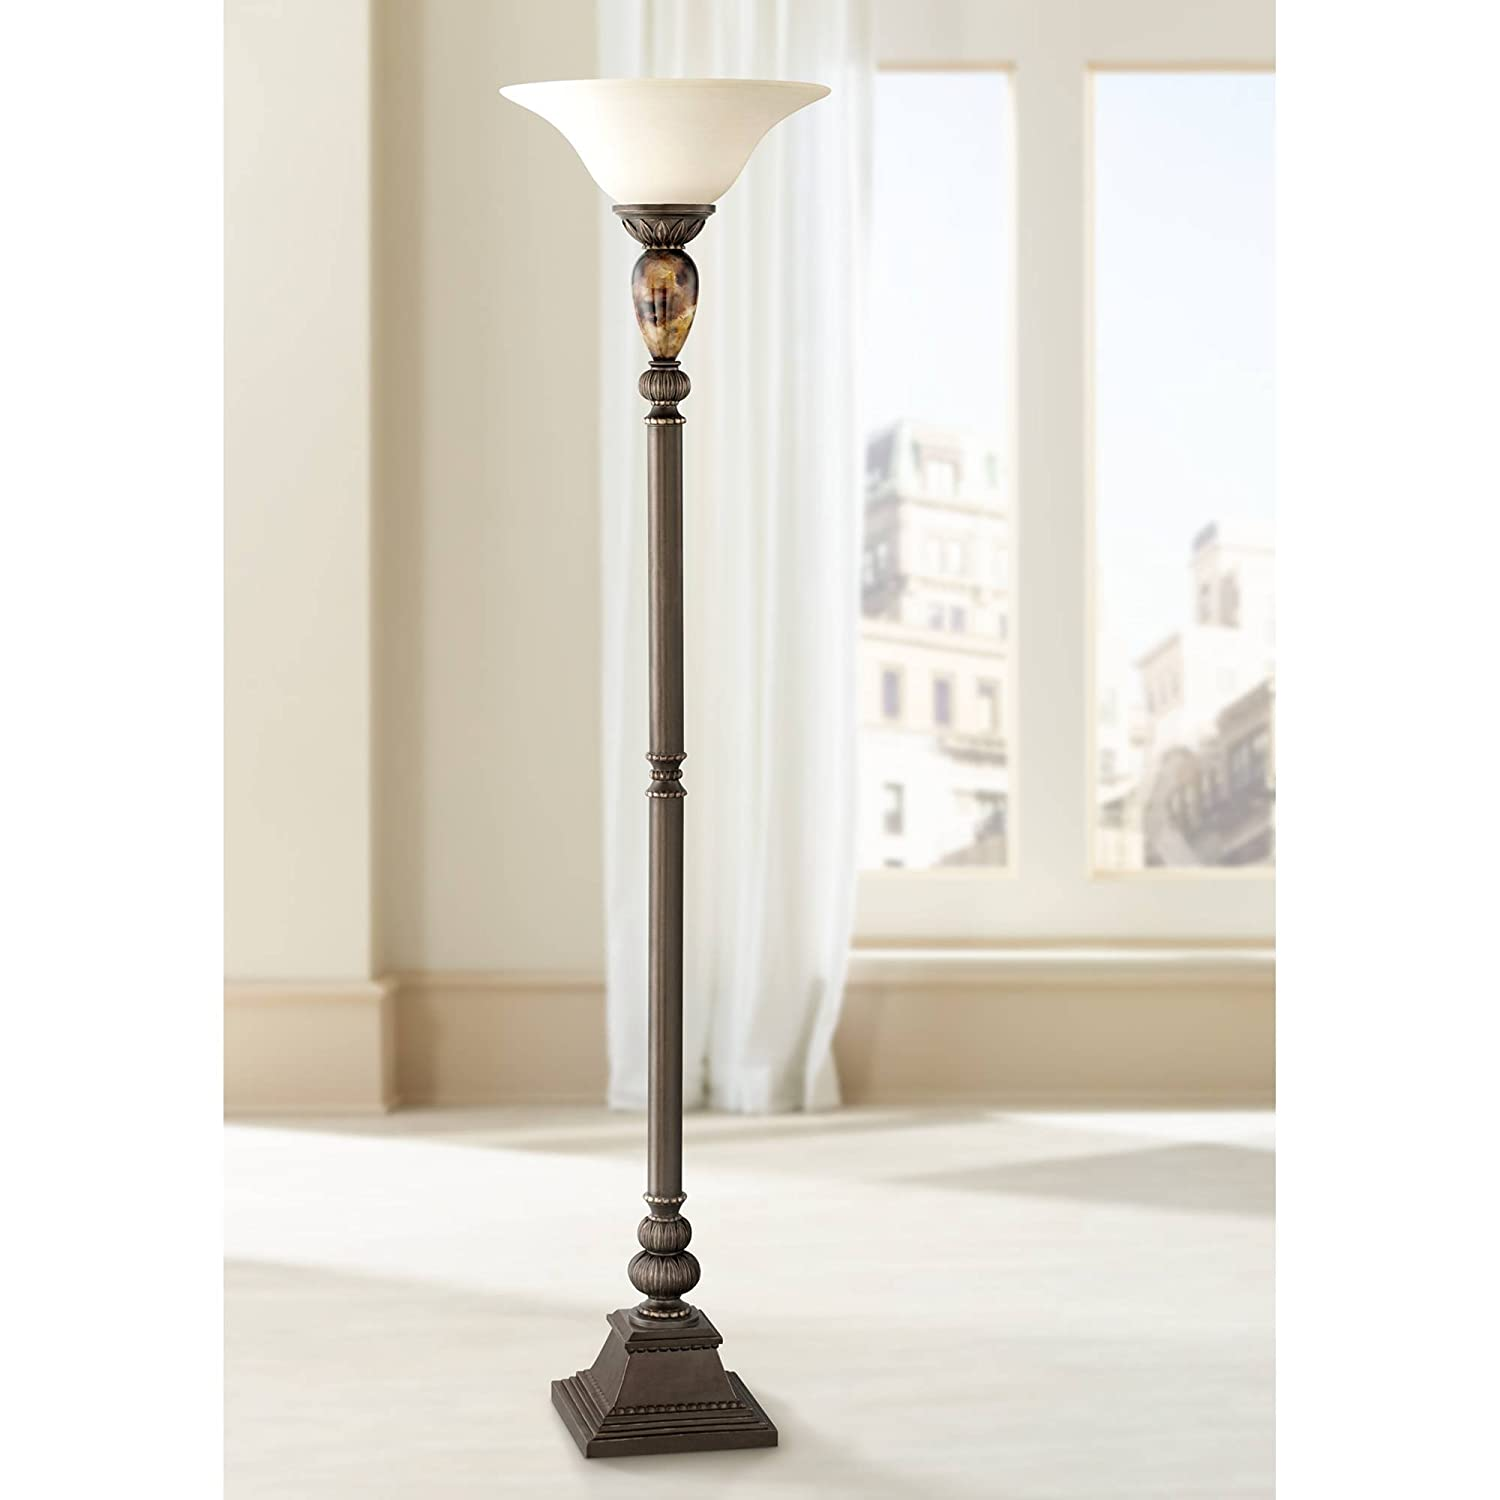 Kathy Ireland Mulholland 72 High Torchiere Floor Lamp